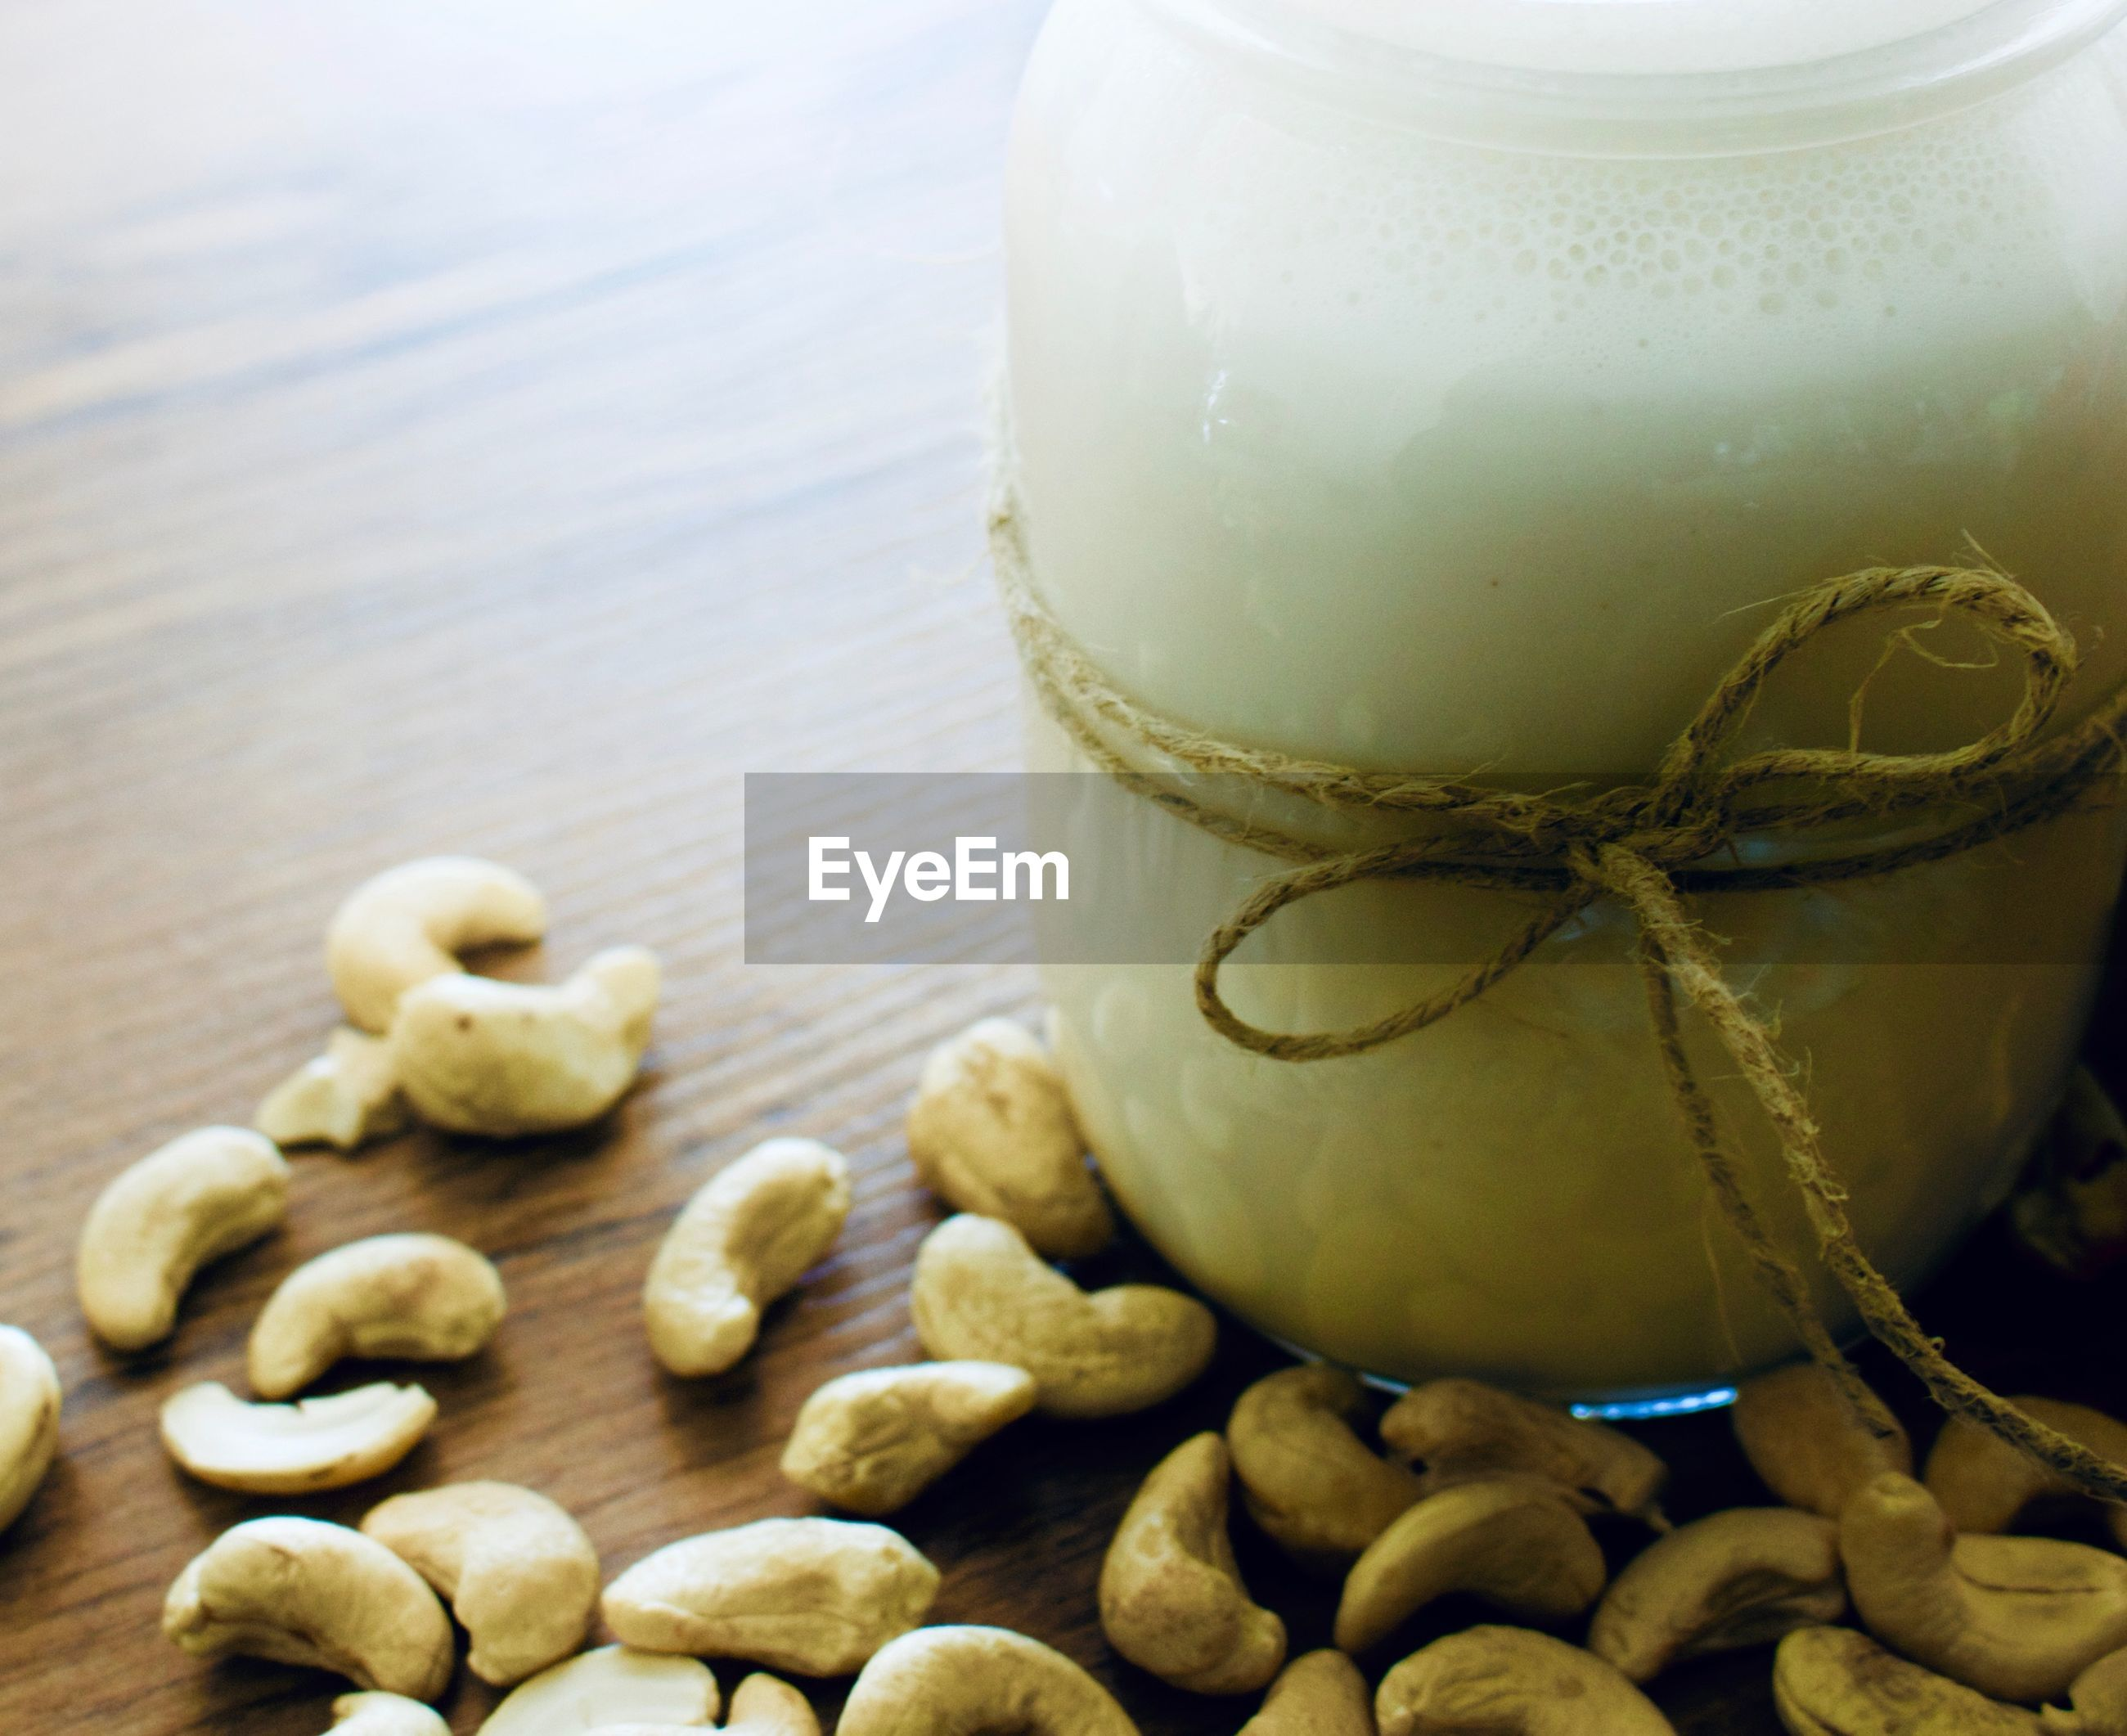 Close-up of drink in glass jar with cashews on table